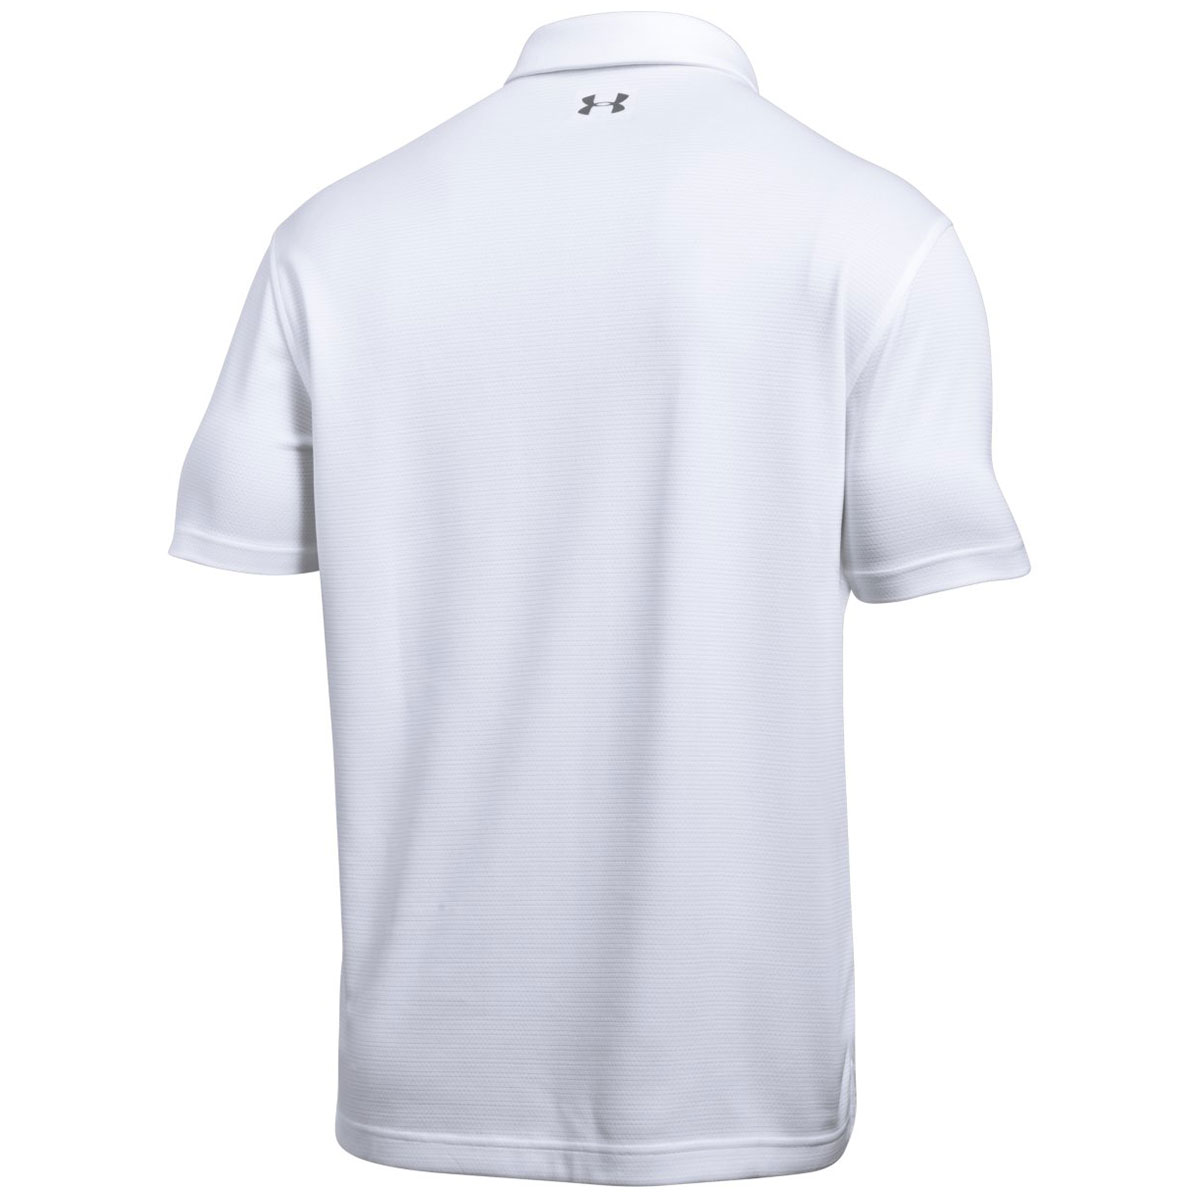 Under-Armour-Mens-Golf-Tech-Wicking-Textured-Soft-Light-Polo-Shirt thumbnail 93